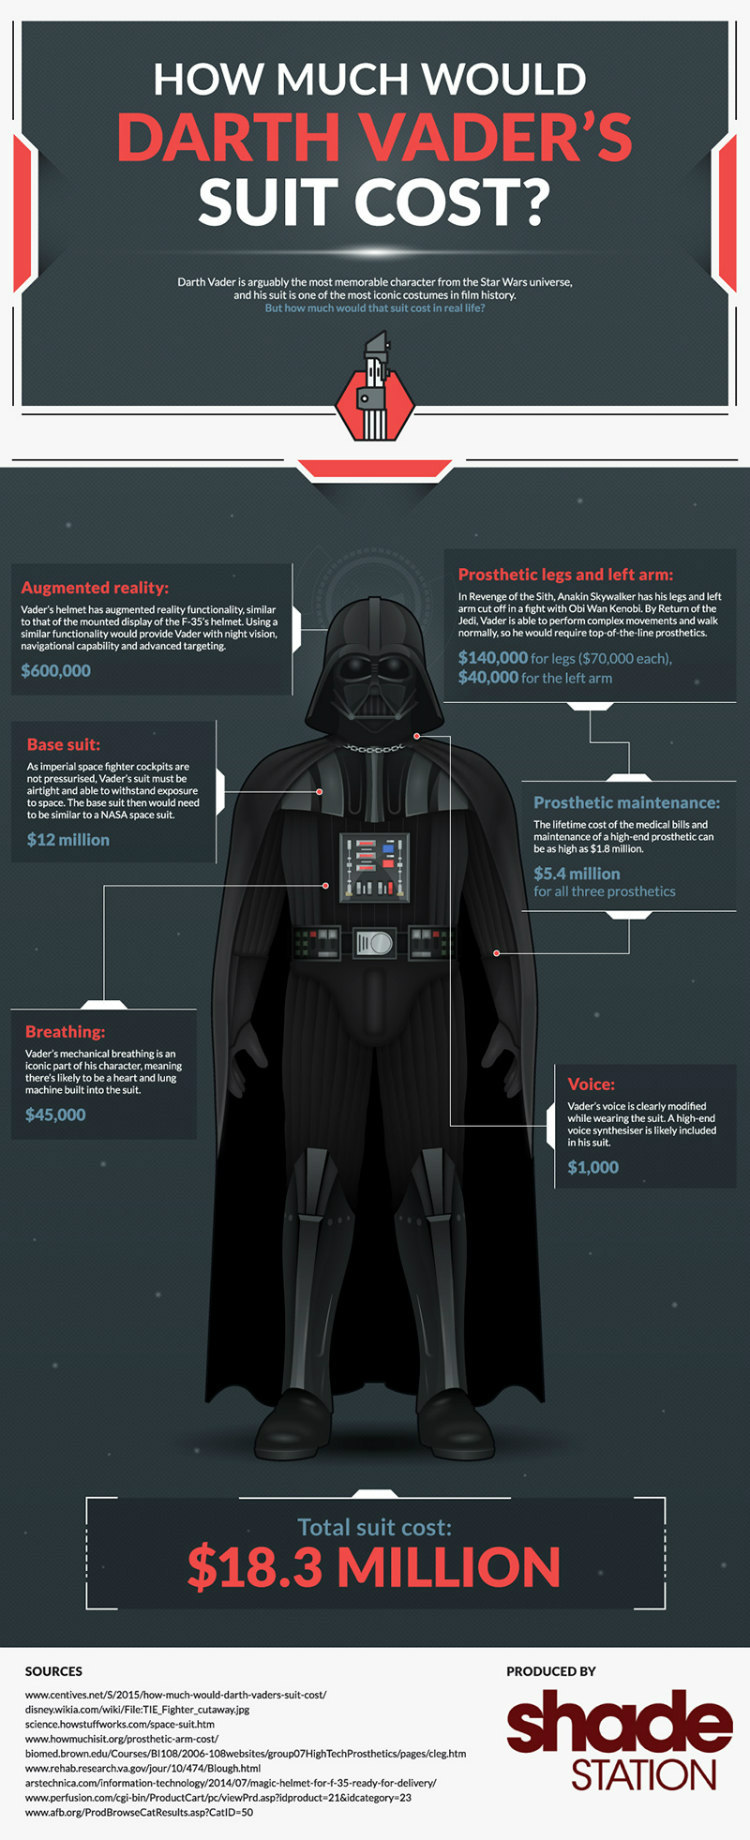 Darth Vader Suit Cost